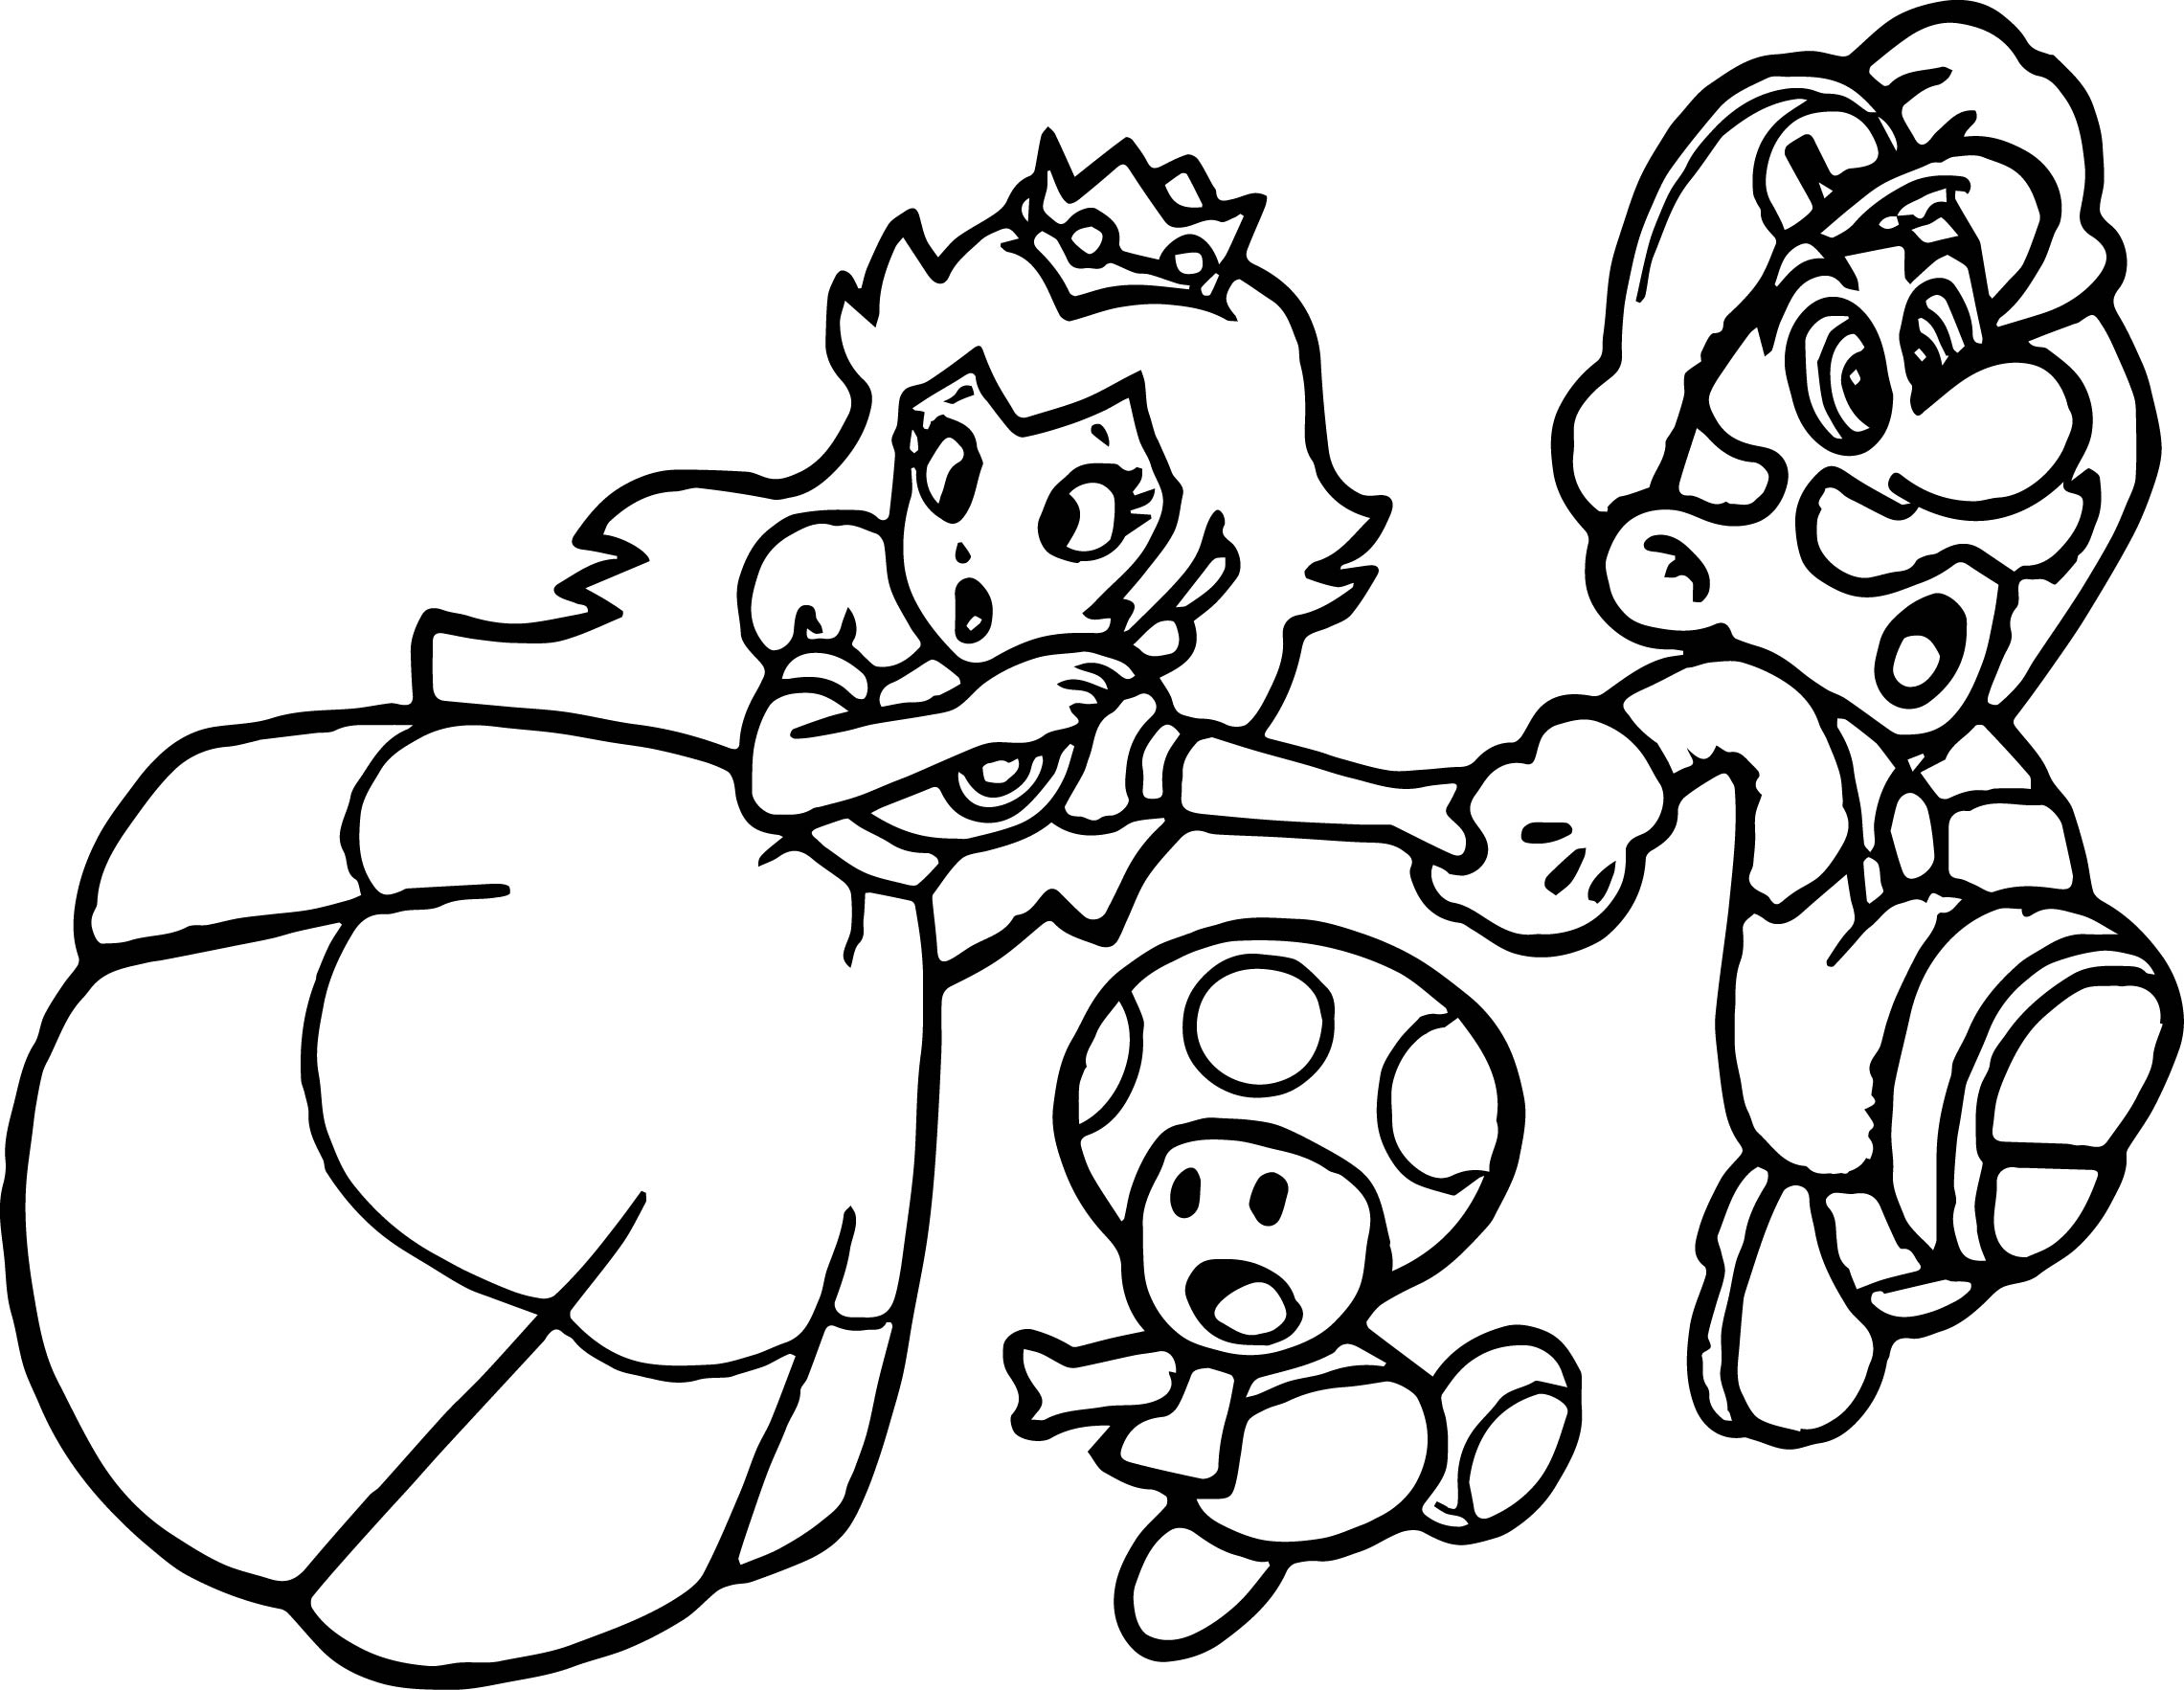 Mario Odyssey Coloring Pages Printable Free Coloring Books Printable Of Super Mario Coloring Pages Bonnieleepanda Gallery